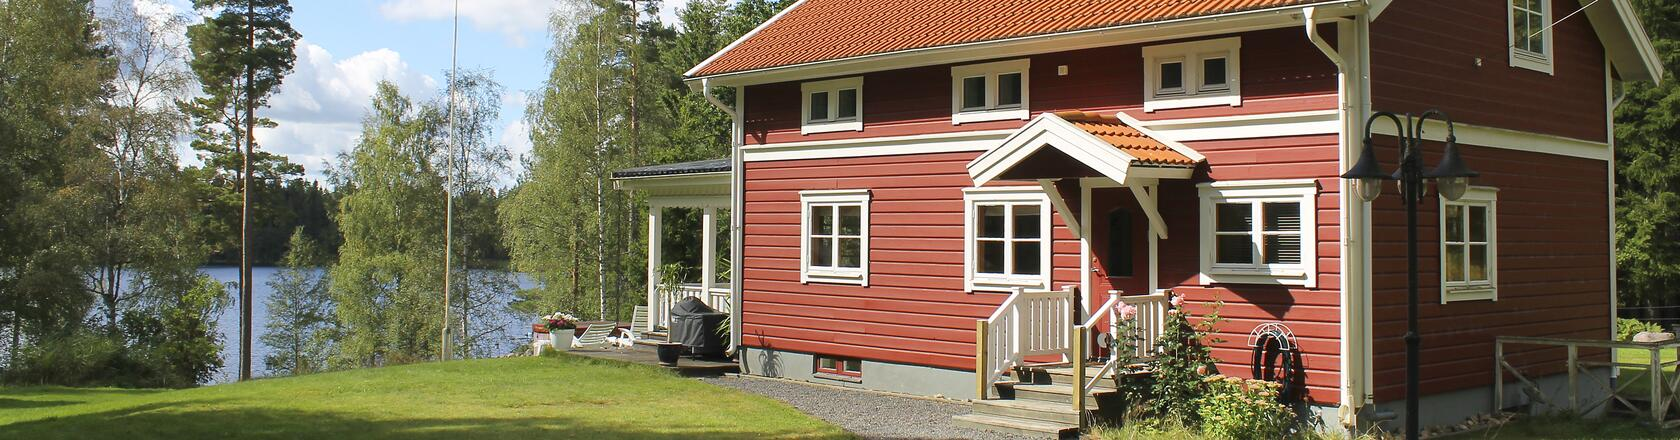 Rörvik in Sweden - Rent a holiday home  with DanCenter